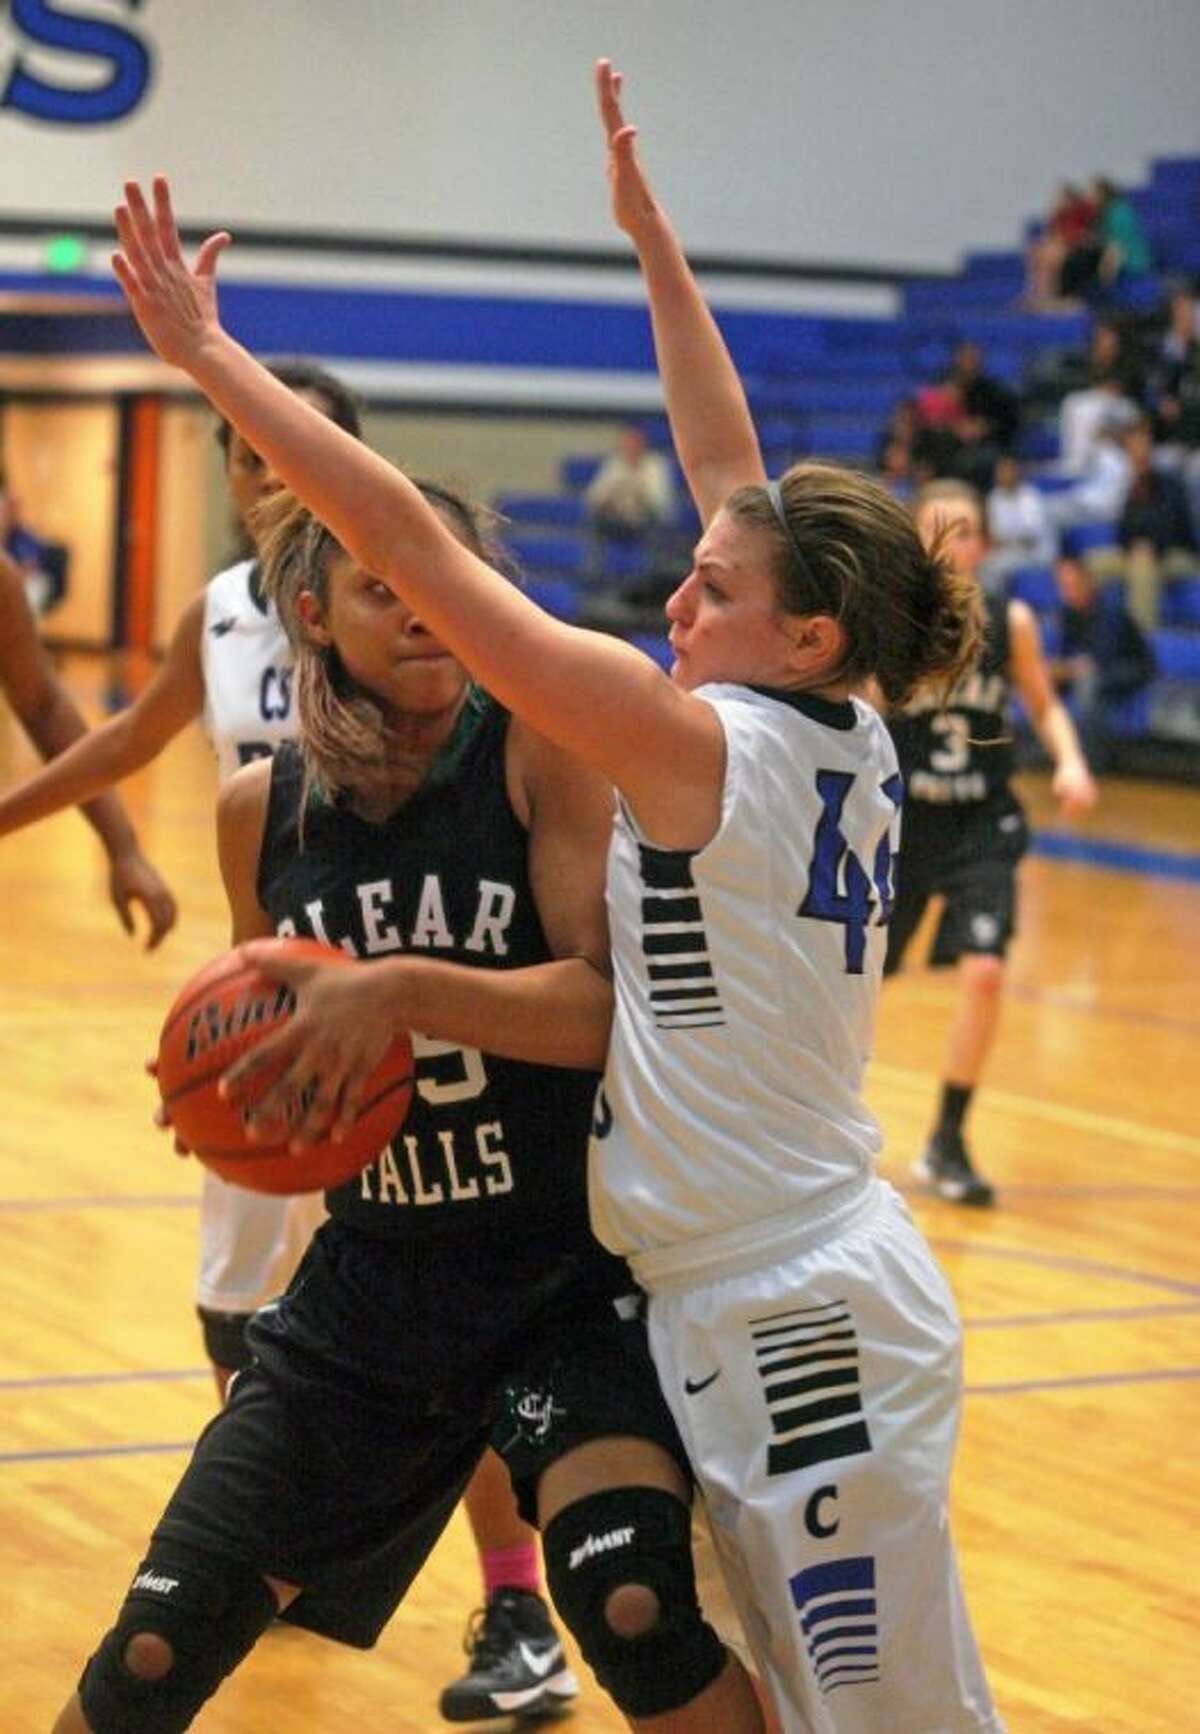 Clear Falls' Ashlynn Dunbar tries to find a teammate while Clear Springs' Paige Tippet applies defensive pressure Friday night. Springs won the battle of unbeaten district teams, 66-41.